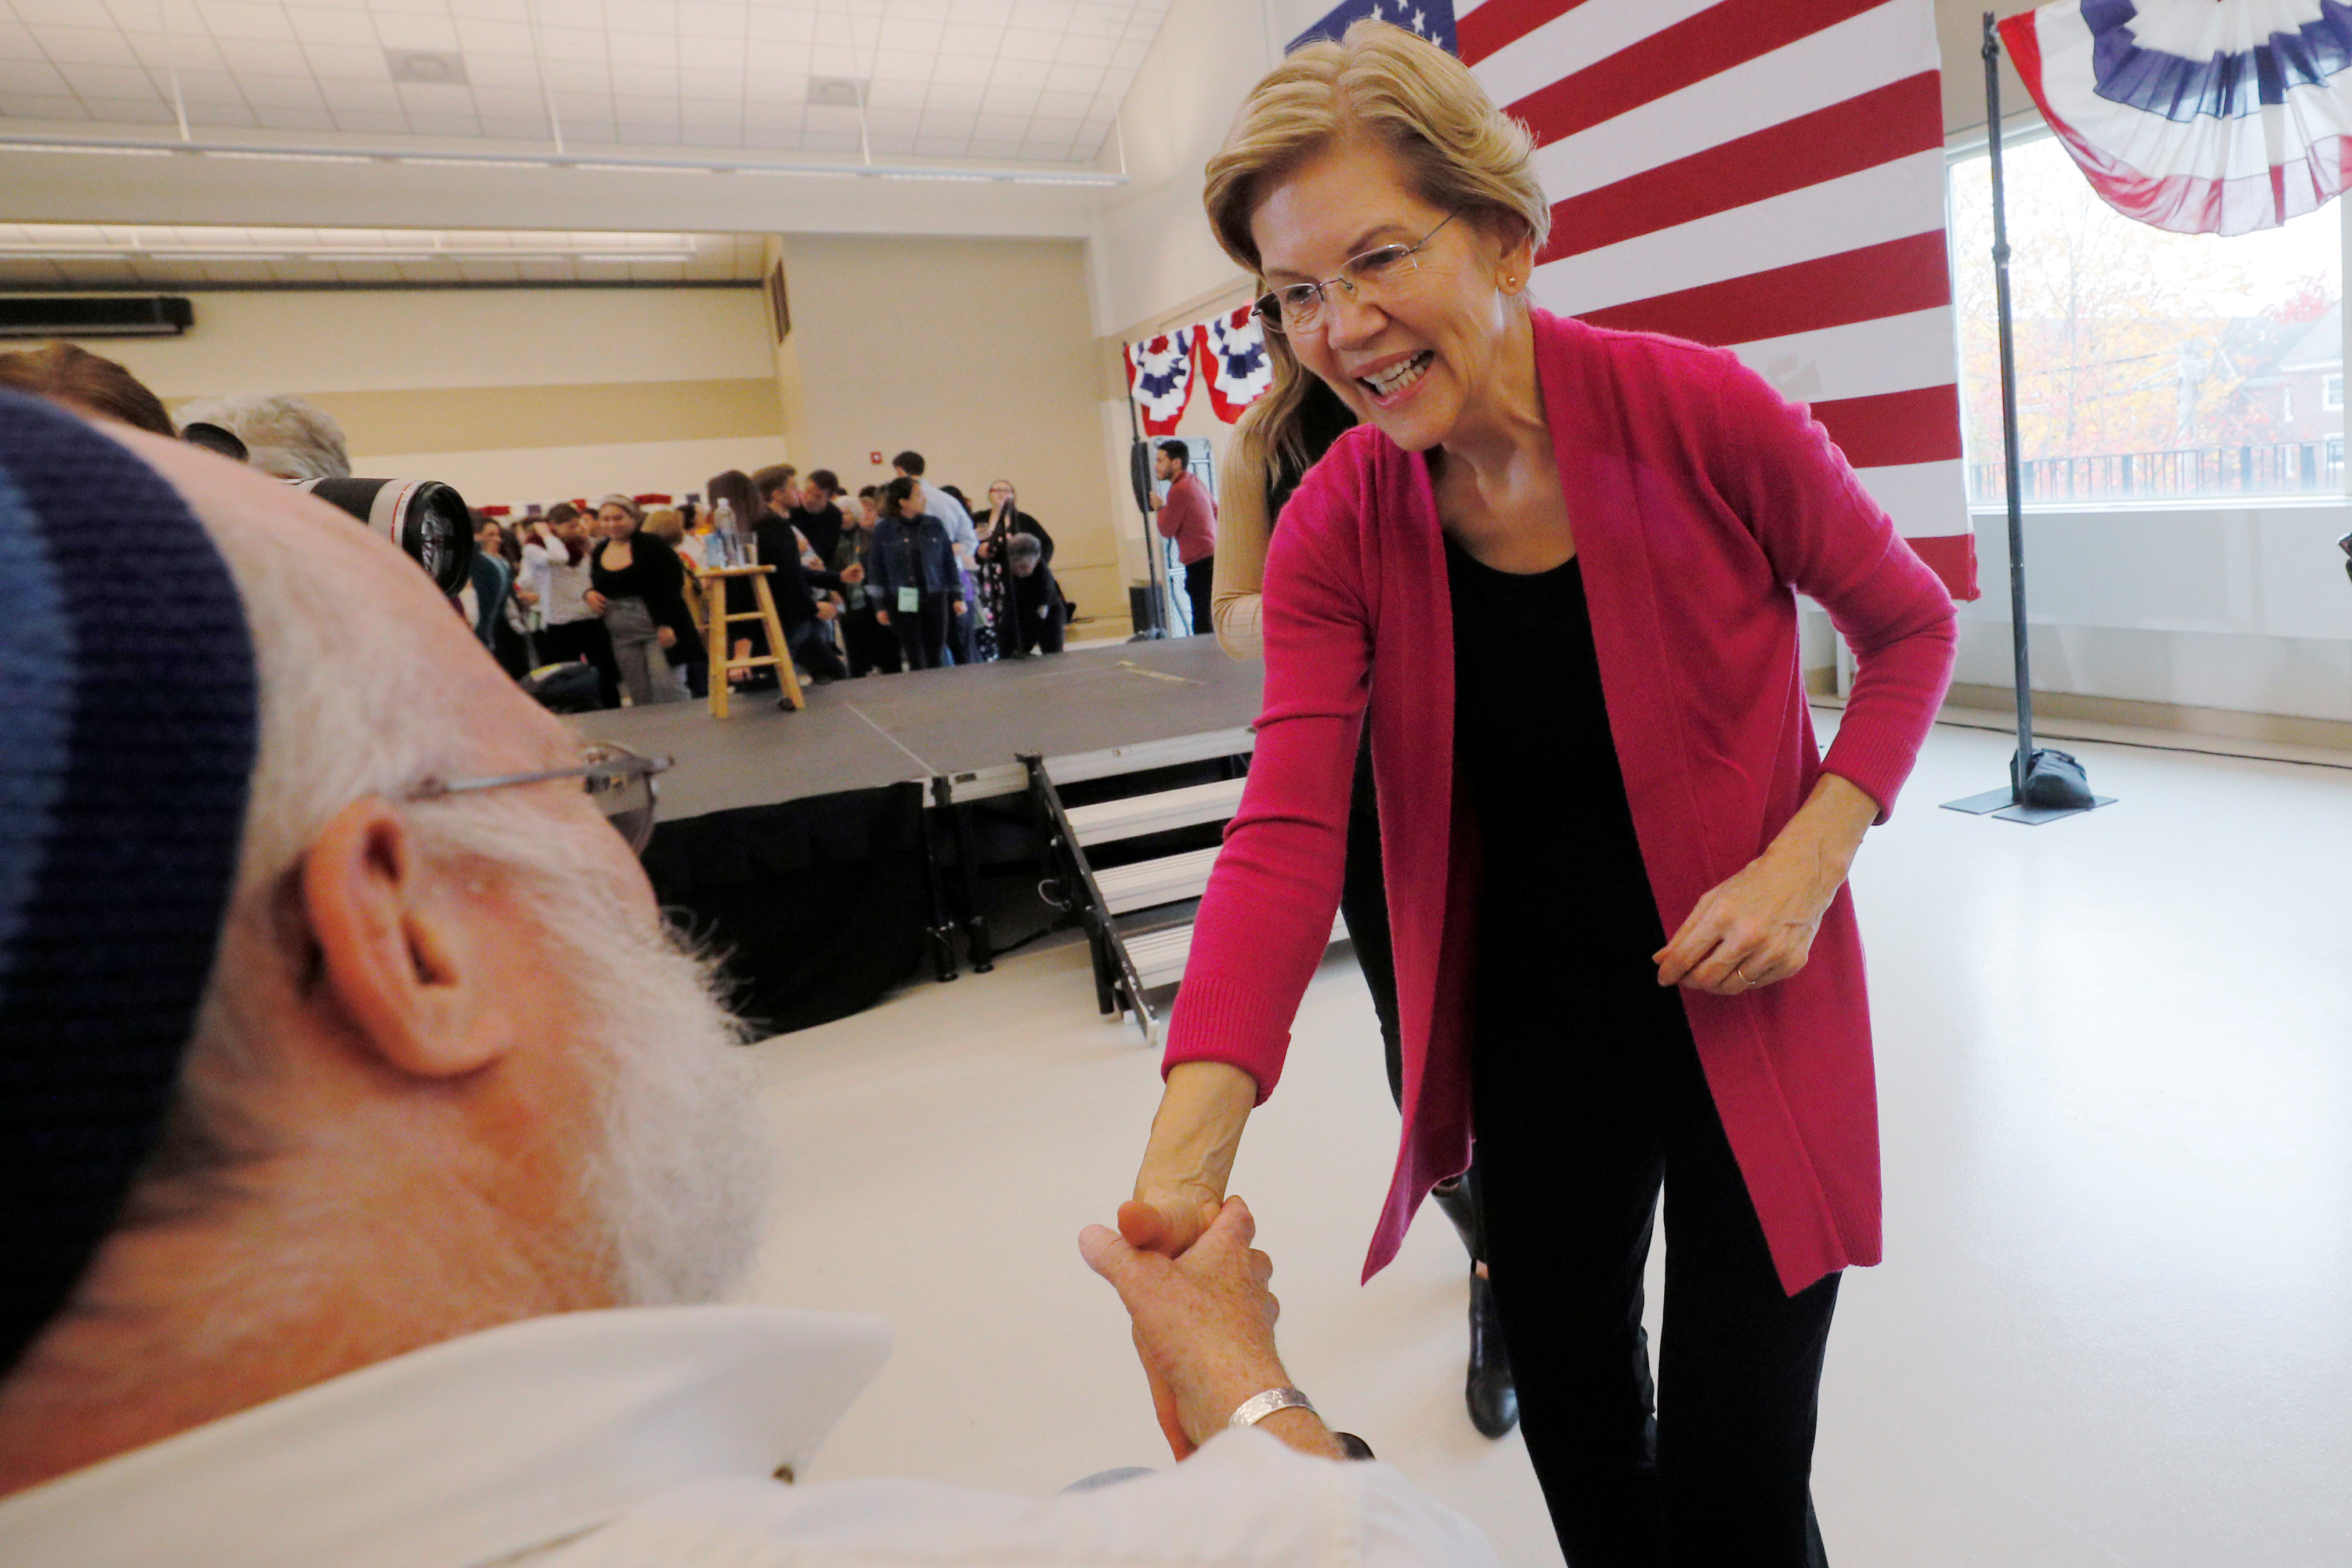 Democratic 2020 U.S. presidential candidate and U.S. Senator Elizabeth Warren (D-MA) greets audience members at a campaign town hall meeting at the University of New Hampshire in Durham, New Hampshire, U.S., October 30, 2019. REUTERS/Brian Snyder